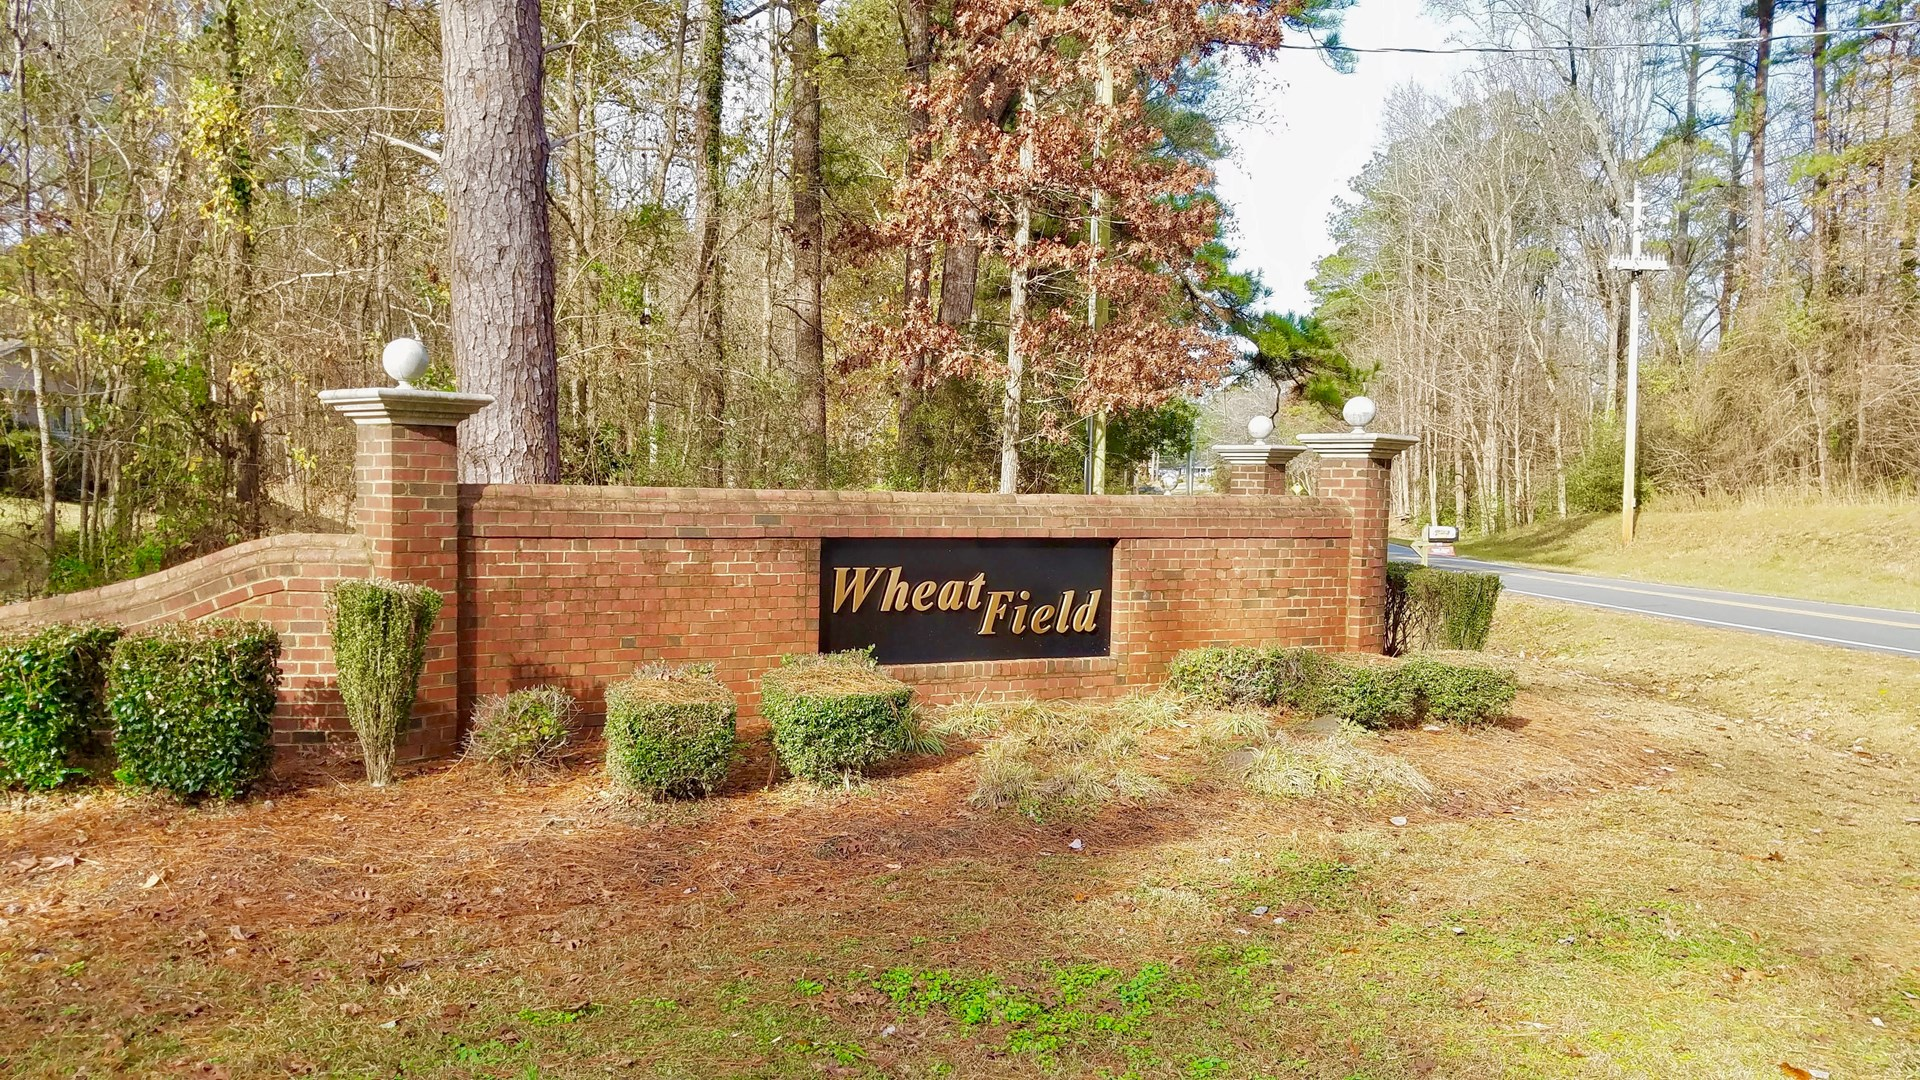 Residential lot for sale in Beaufort County, NC